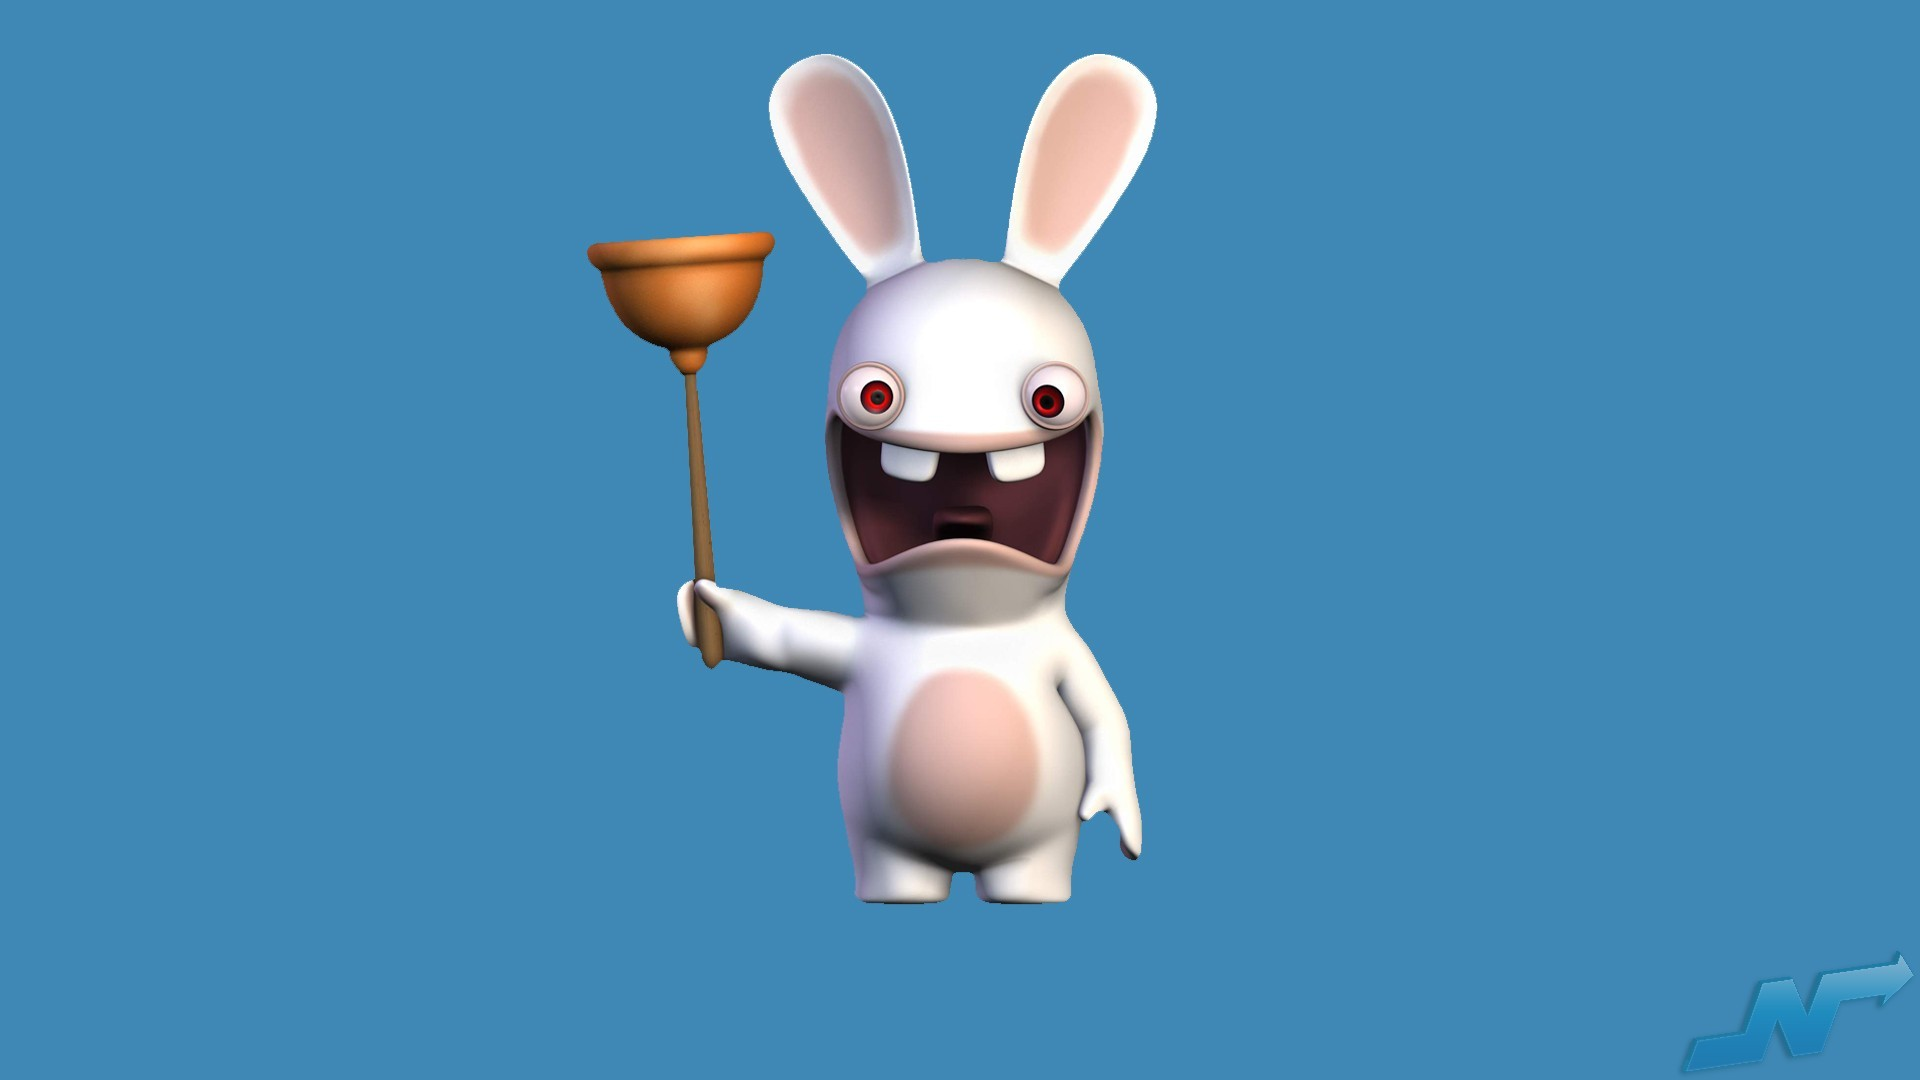 Minions Hd Wallpapers 1080p Rabbids Invasion Wallpaper 71 Images